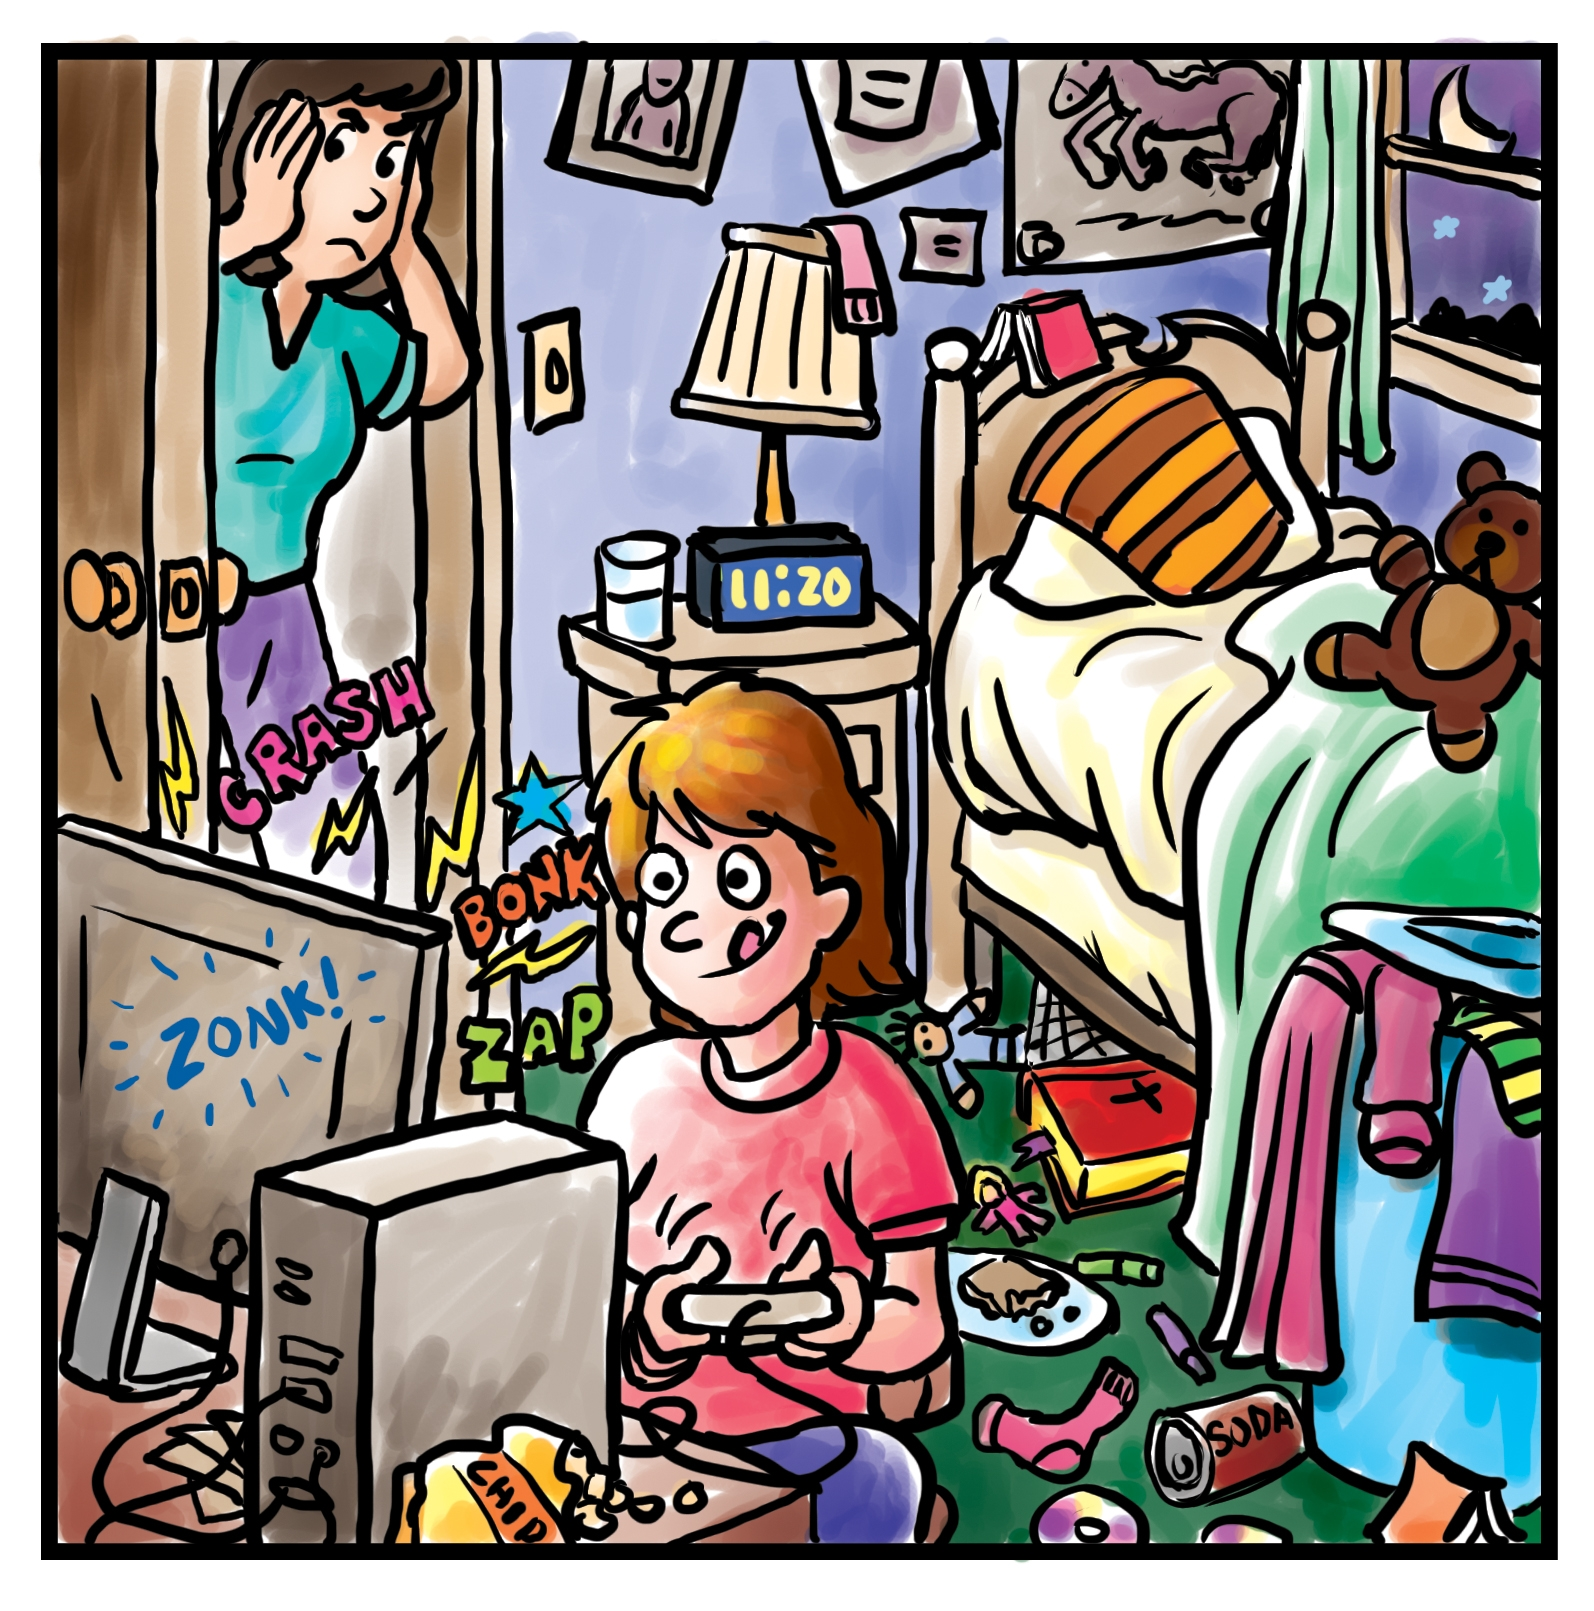 Room clipart mess #7